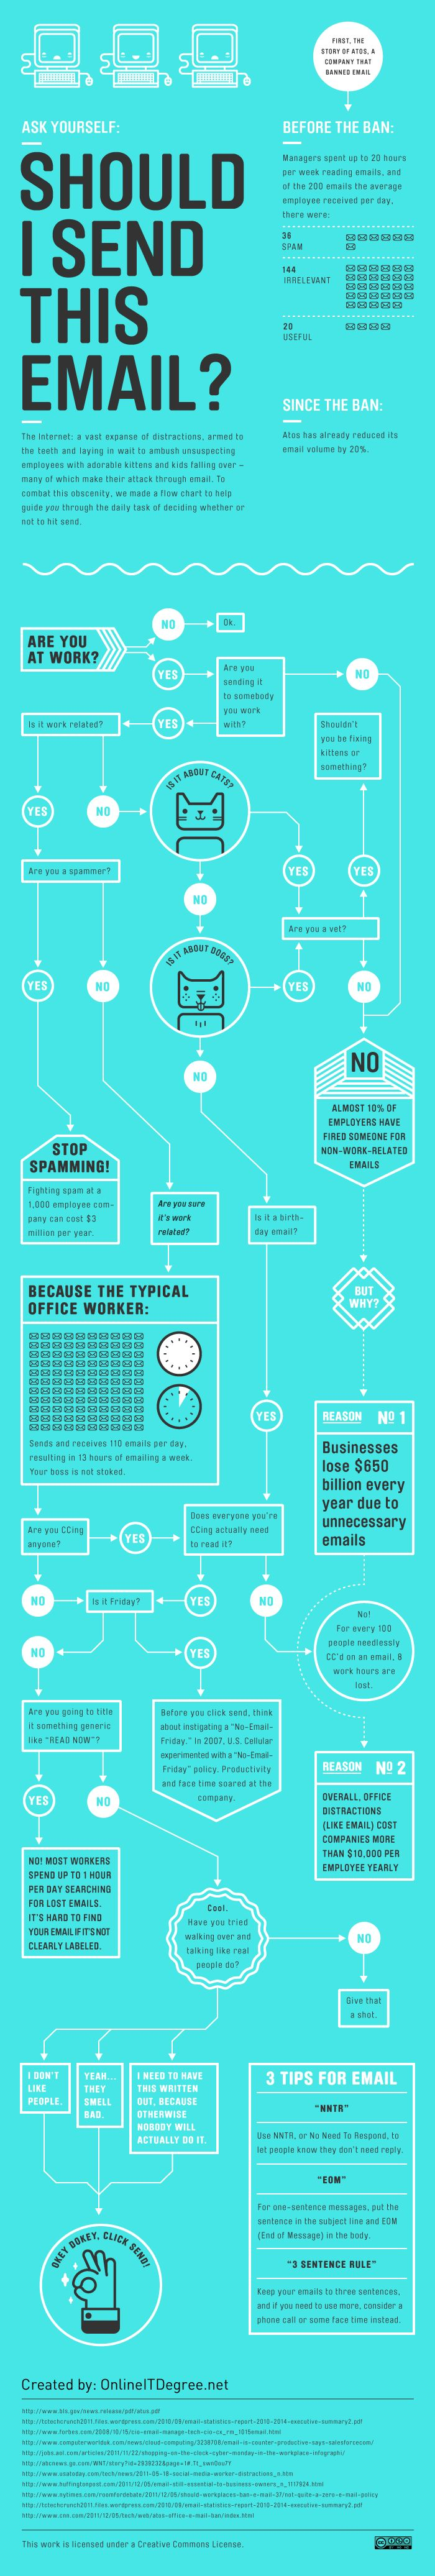 Should I send this email? Interesting facts about the amount of emails we see on a daily basis.